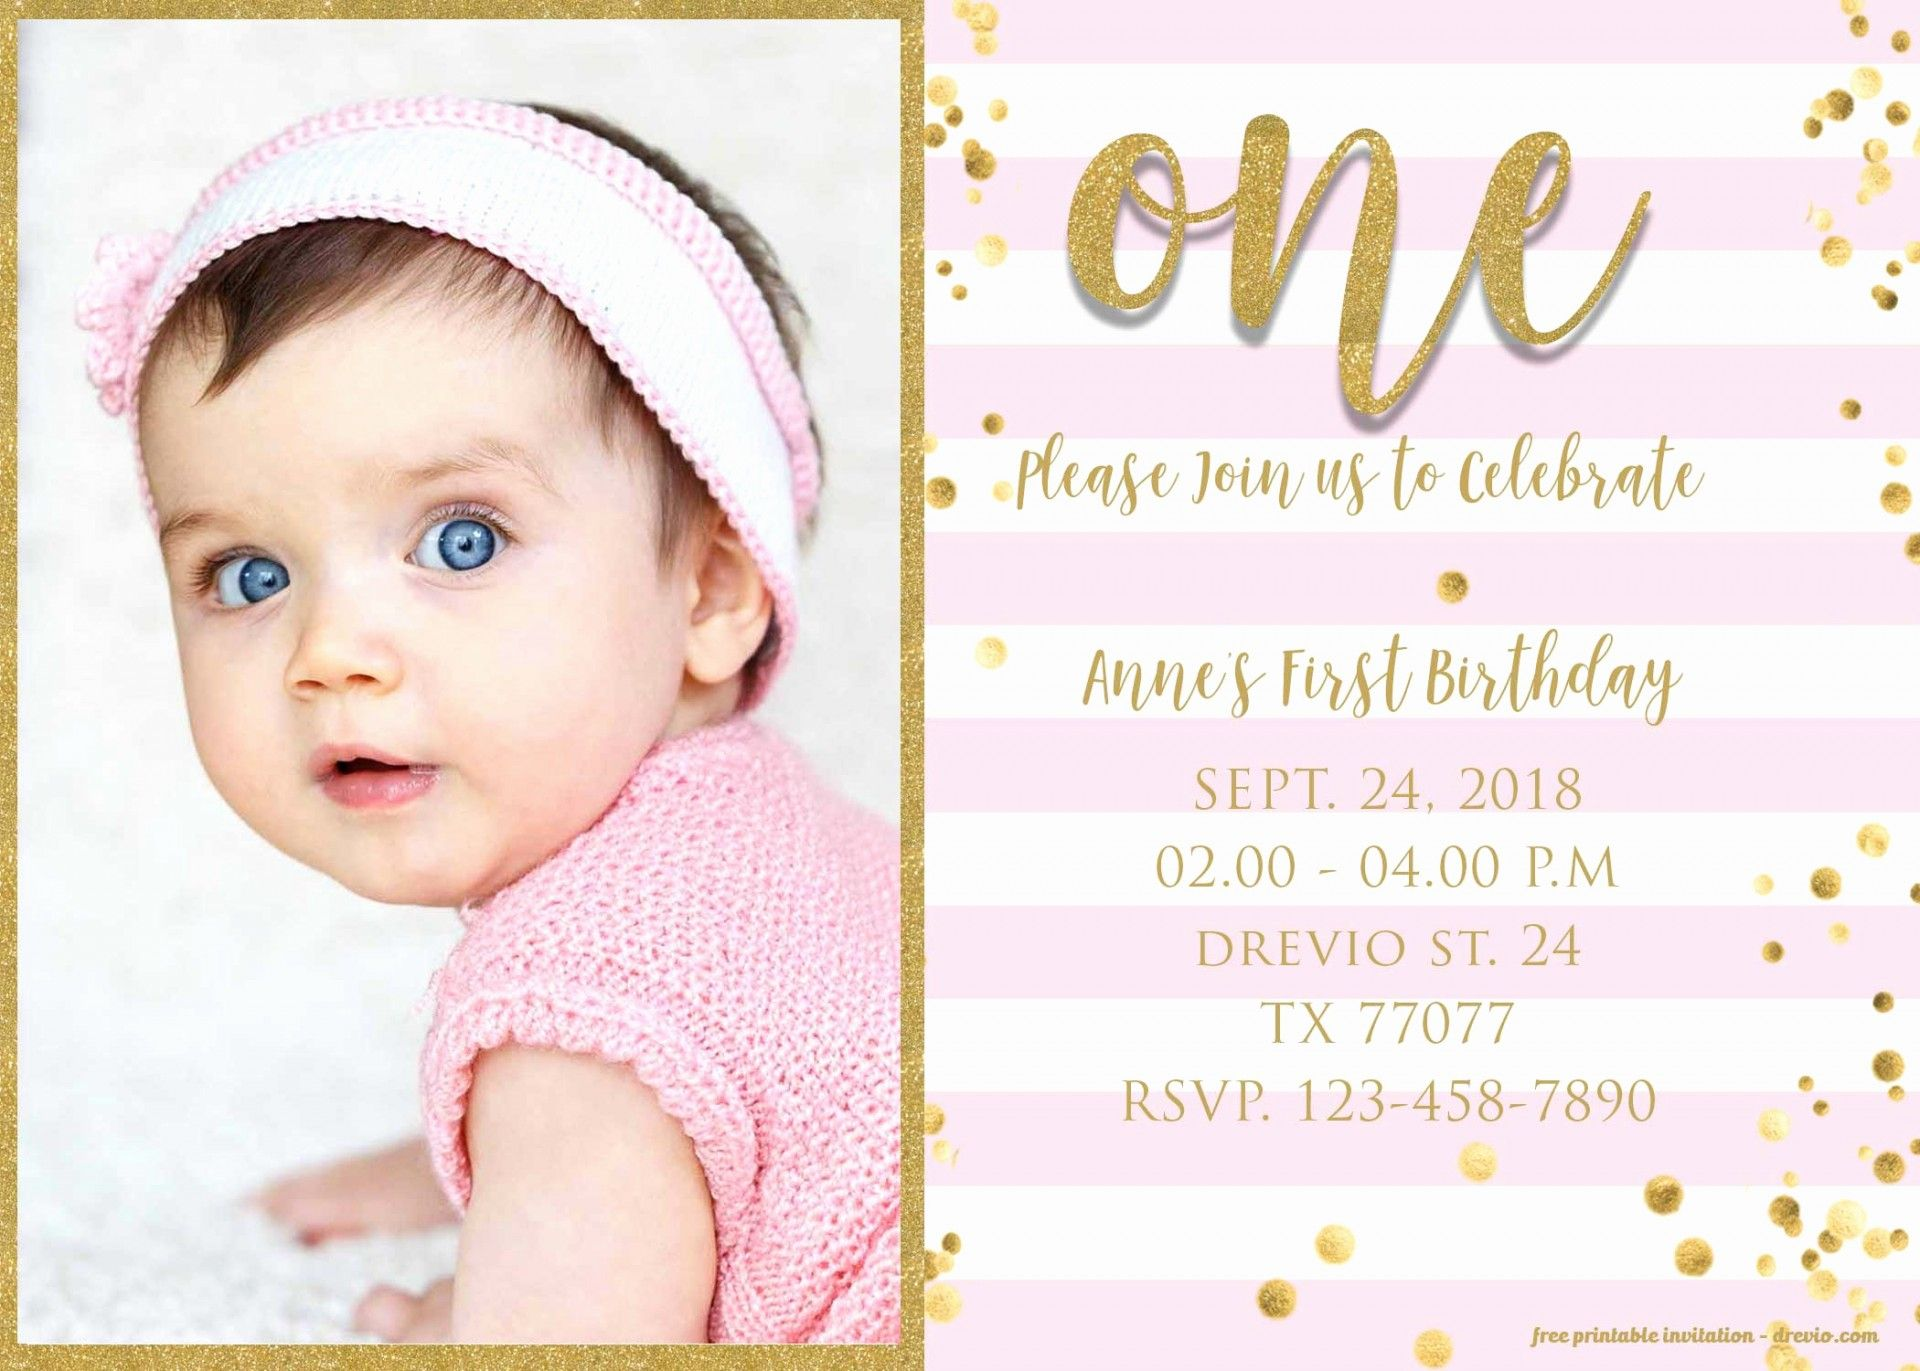 The Outstanding 1st Birthday Invitation Templates Free Download Zohre Pertaining To F 1st Birthday Invitations Girl 1st Birthday Invitations Pink Invitations